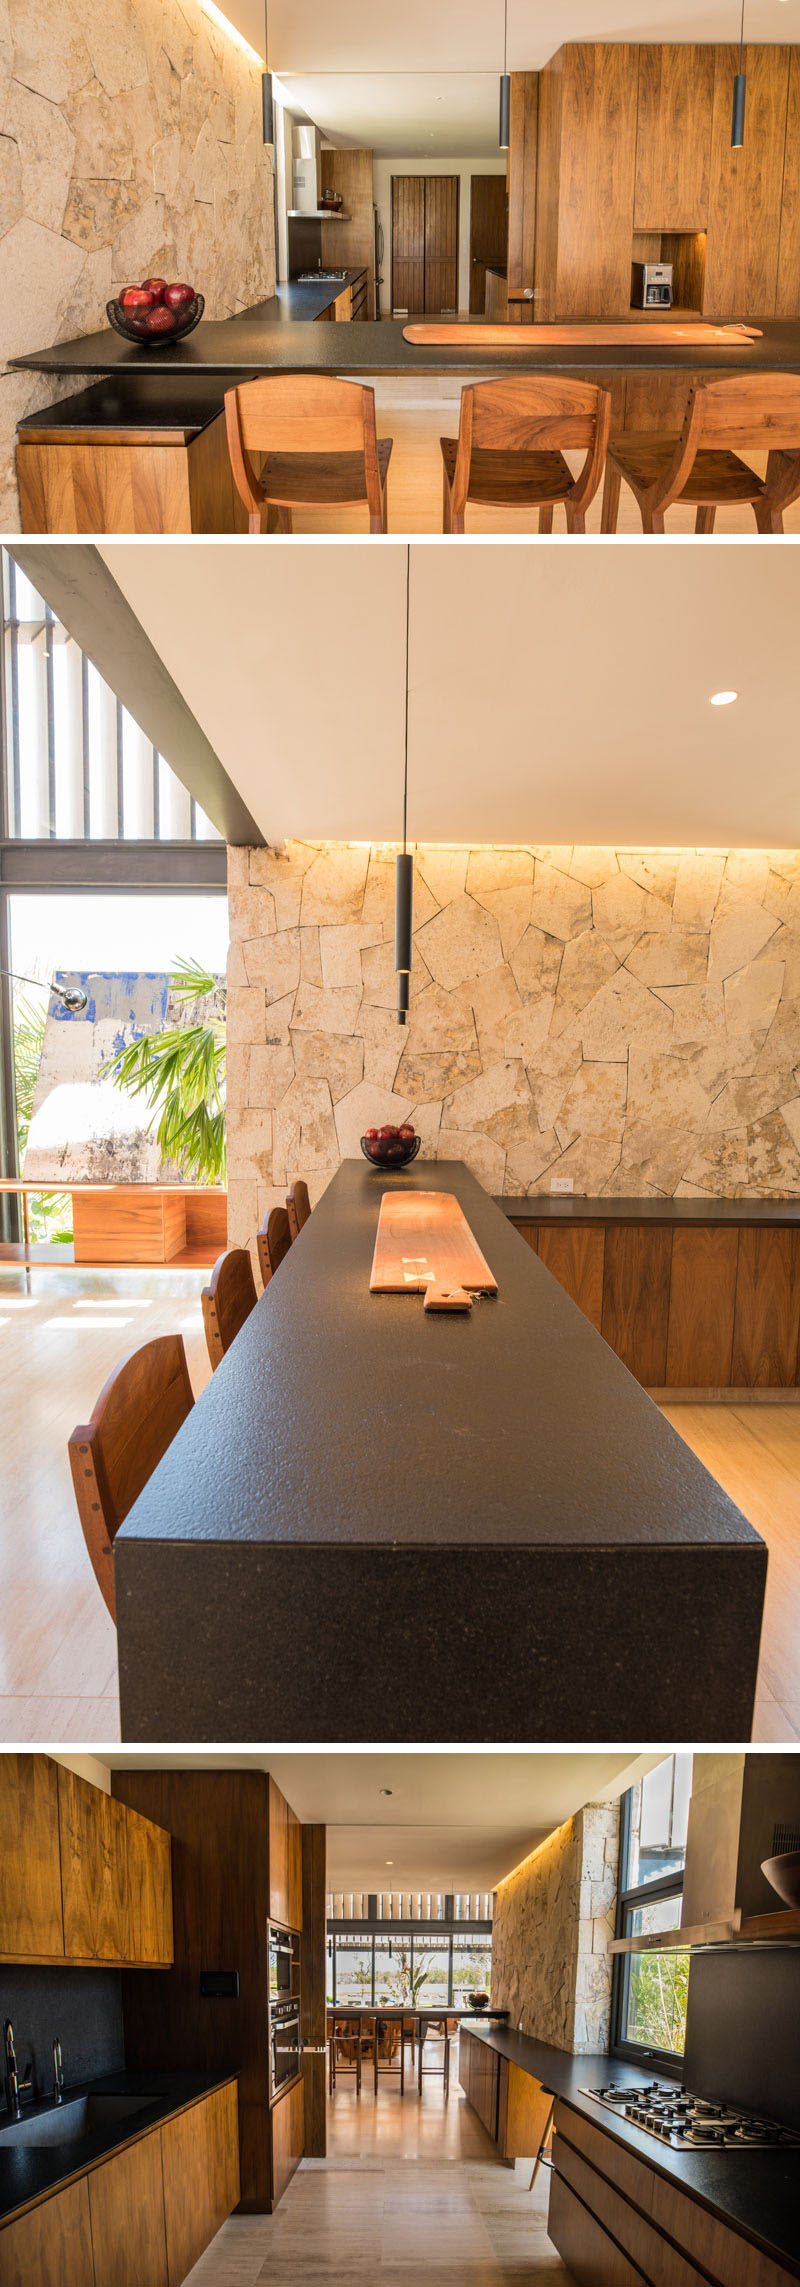 This modern kitchen features a light stone wall with a contrasting dark countertops and wood cabinetry.